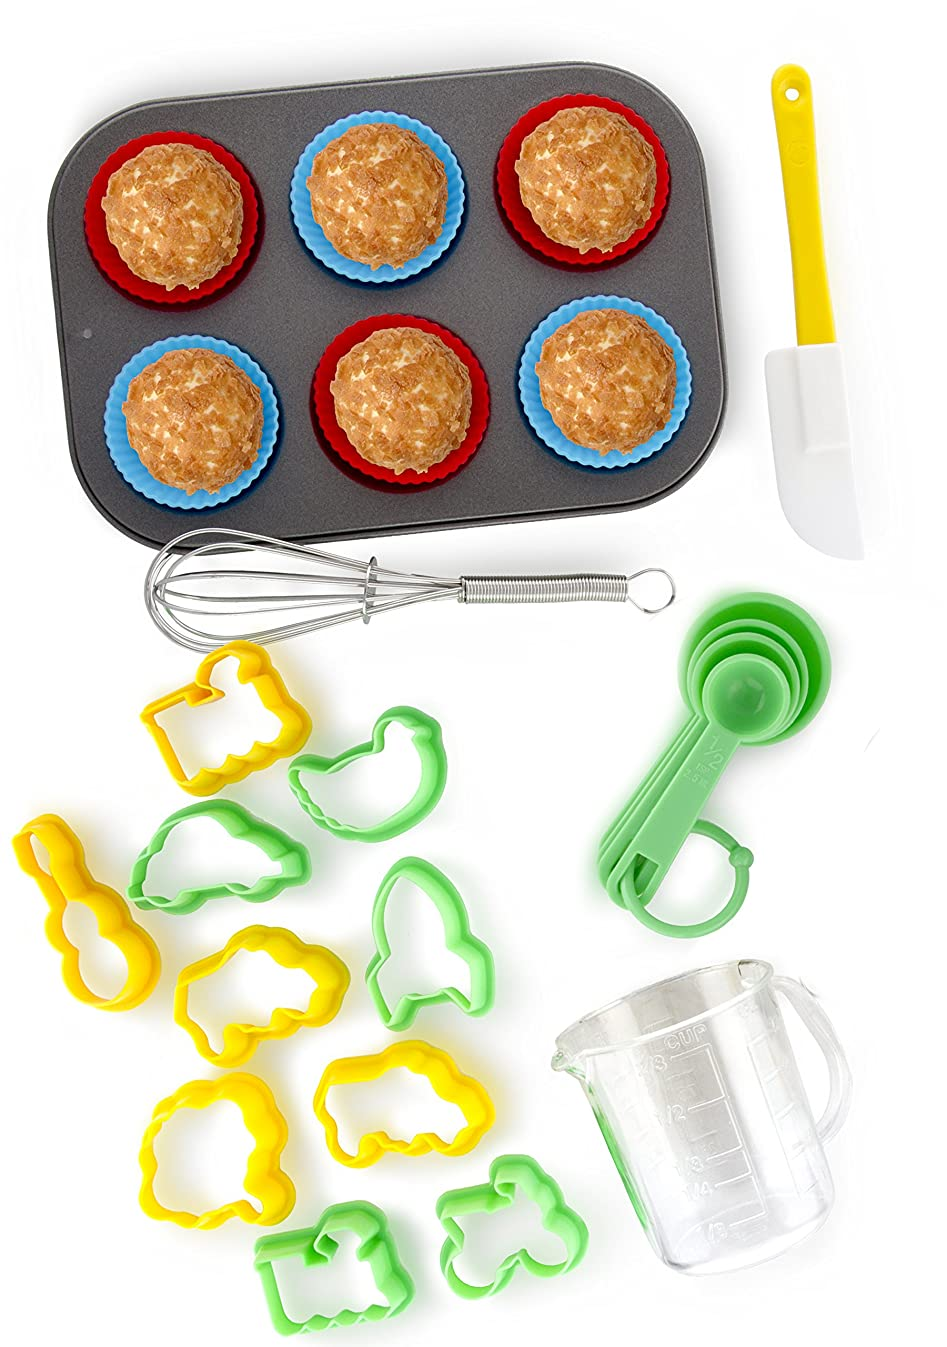 24-Piece Kids Baking Set by Boxiki Kitchen   Muffin Pan, 6 Silicone Cupcake Liners, 10 Cookie Cutters, Spatula, Egg Whisk, Mini Measuring Cup and 4 Measuring Spoons